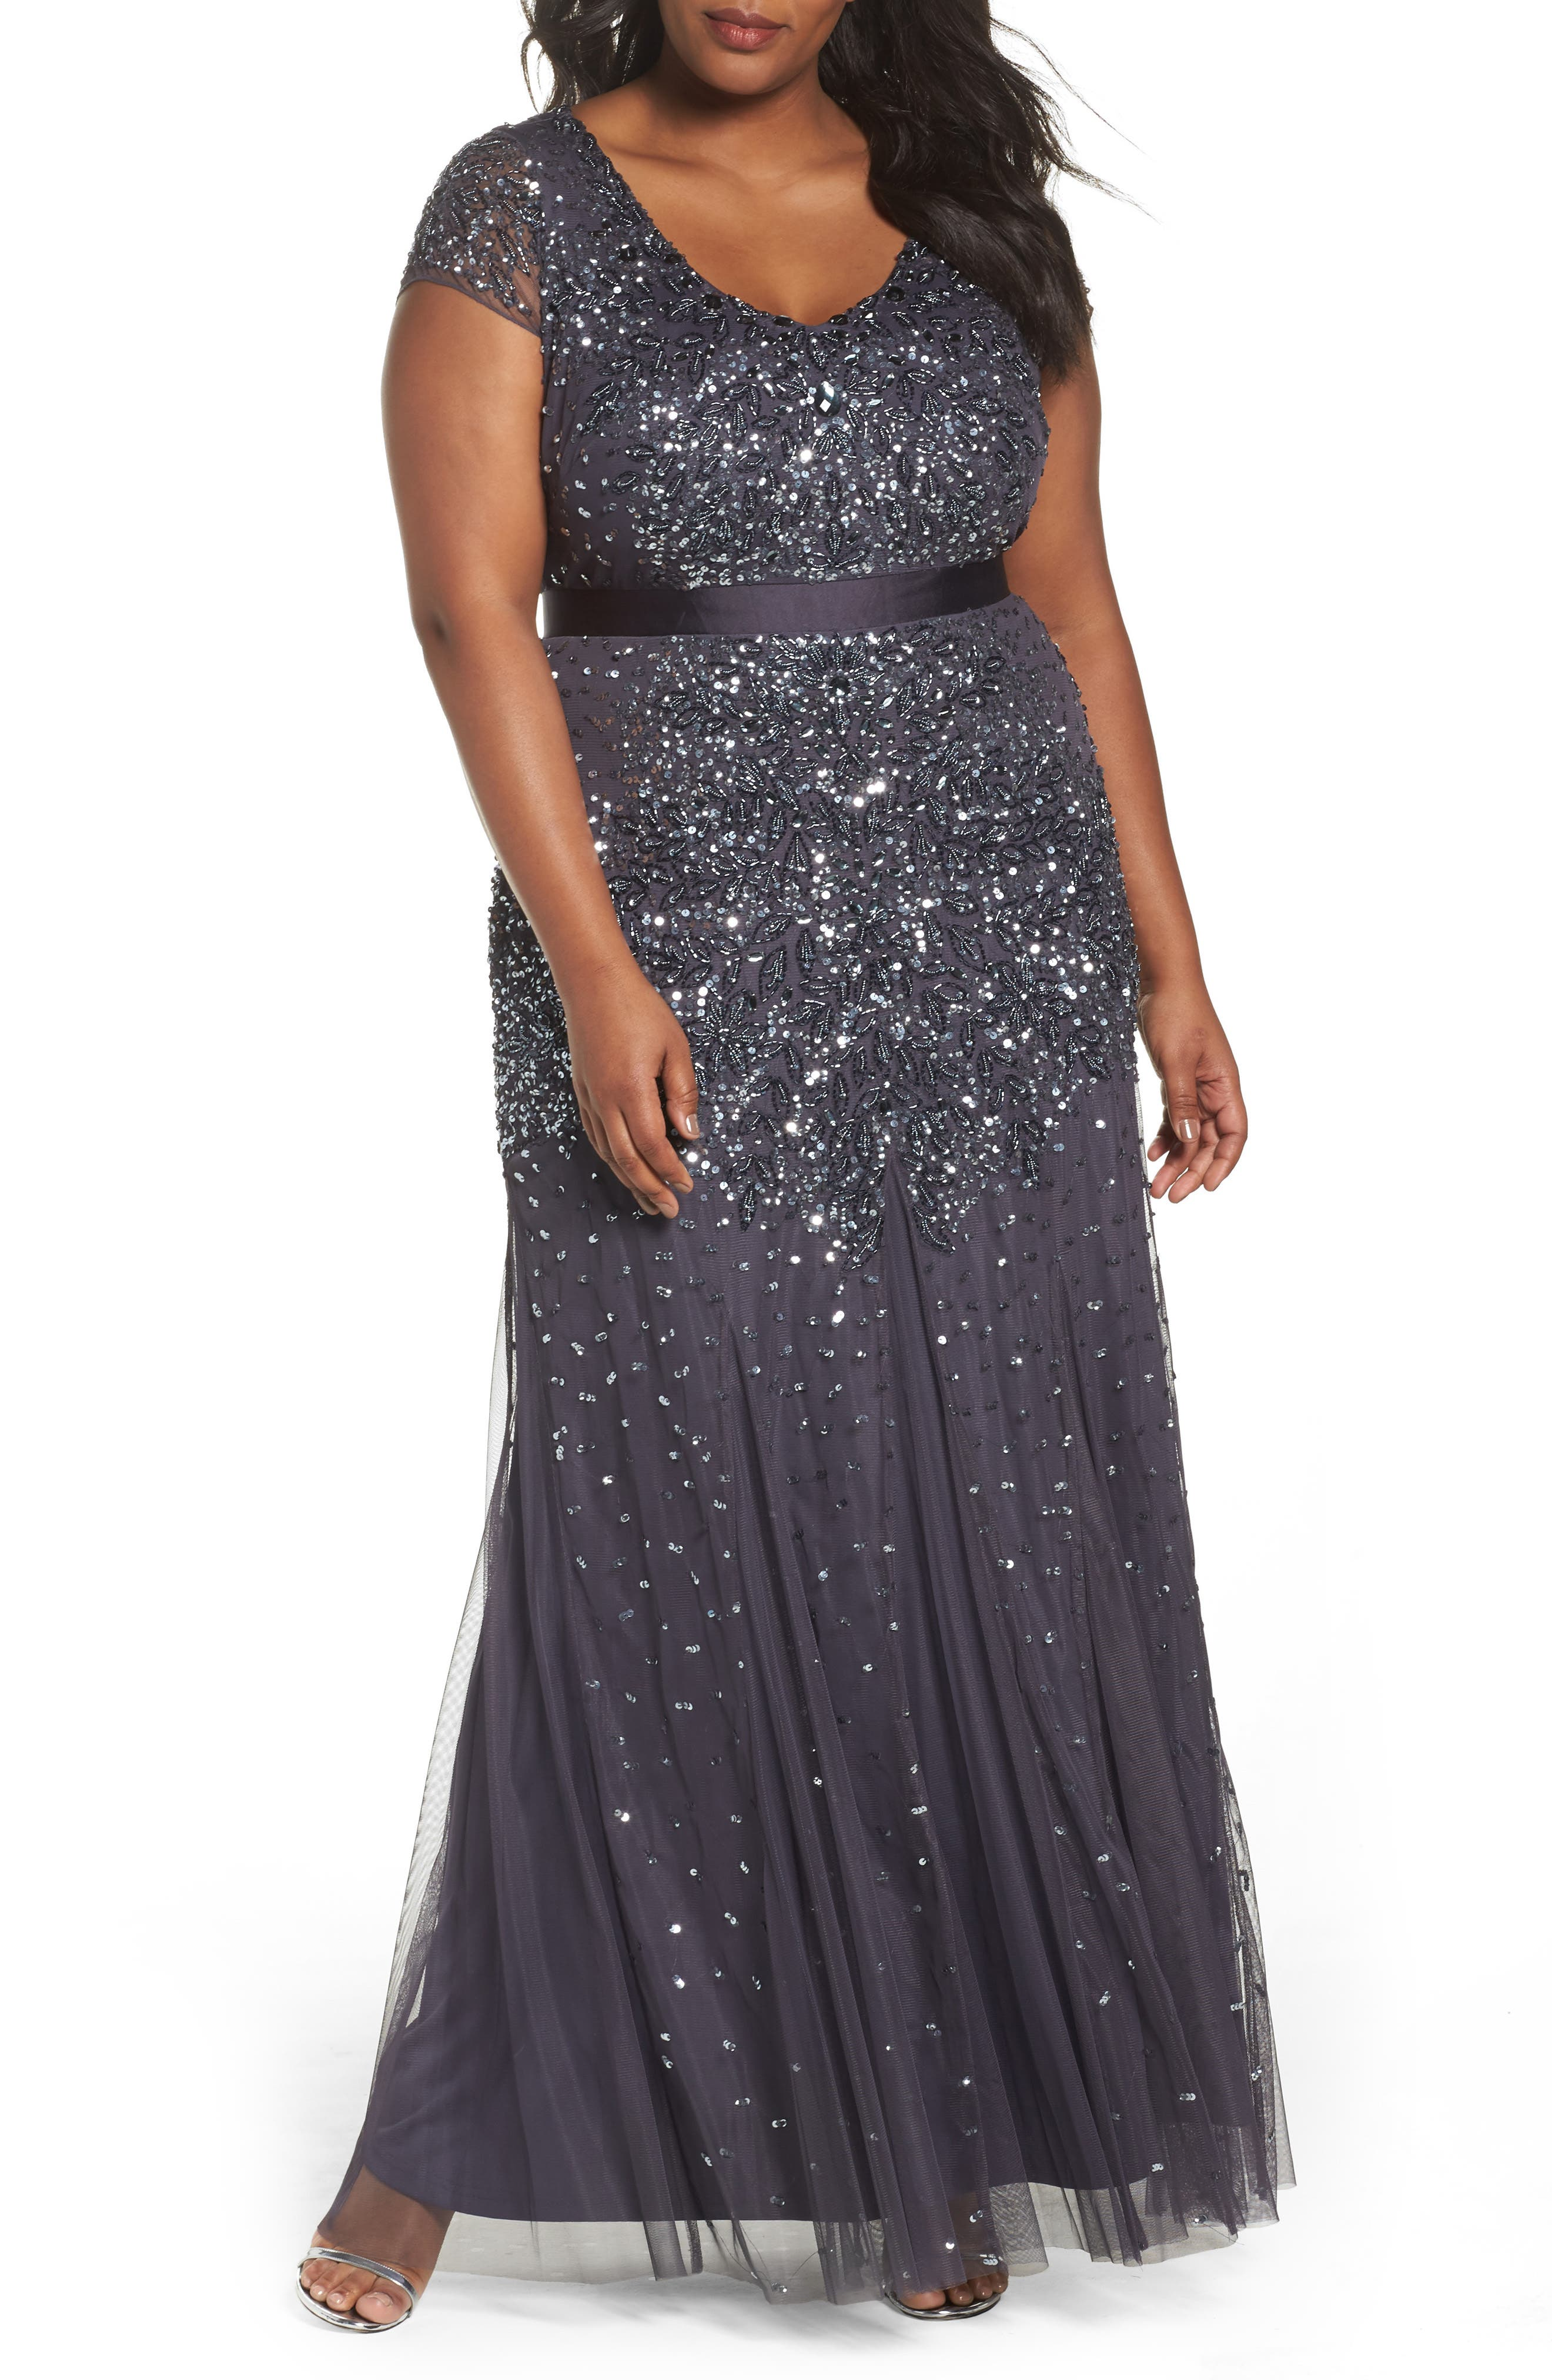 Alternate Image 1 Selected - Adrianna Papell Beaded V-Neck Gown (Plus Size)